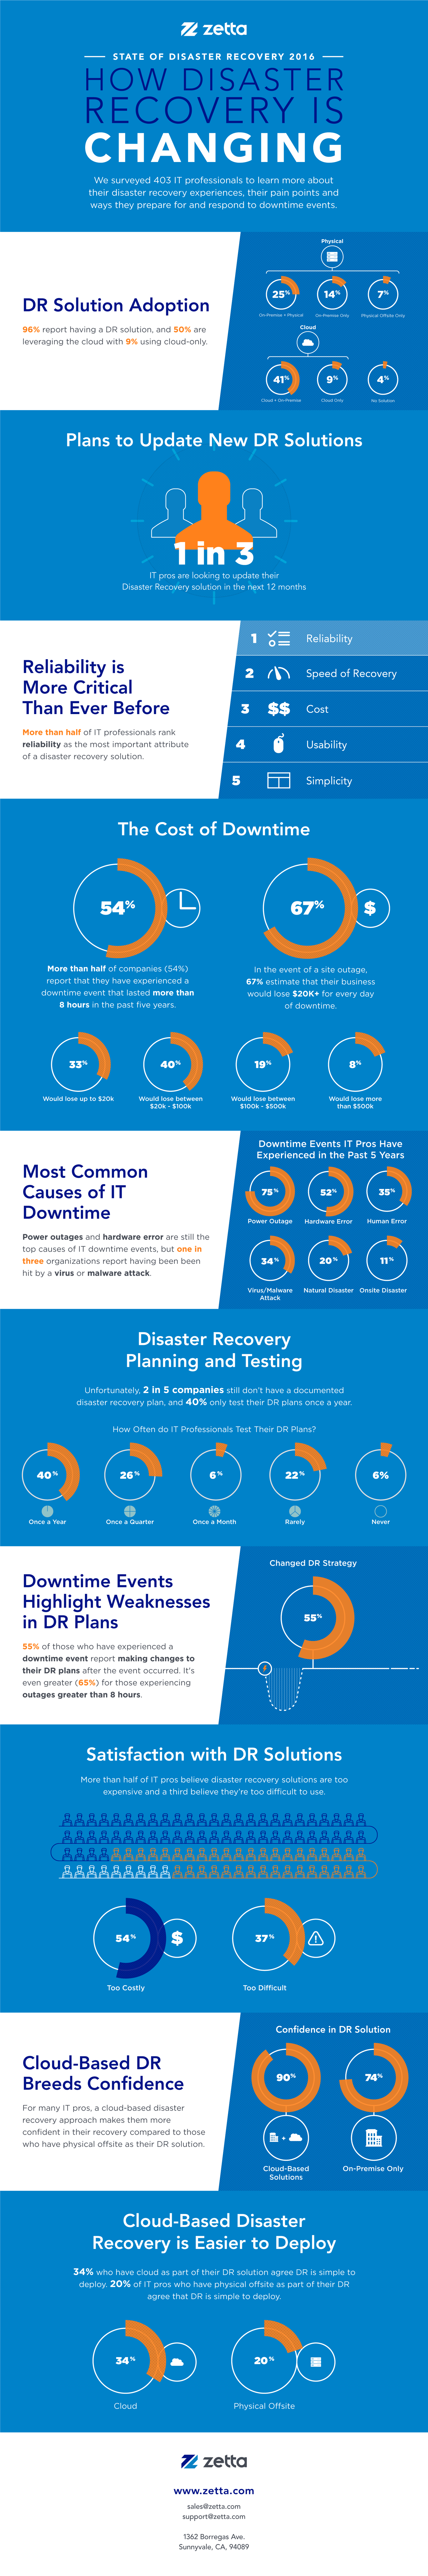 zetta-state-of-dr-infographic-2016